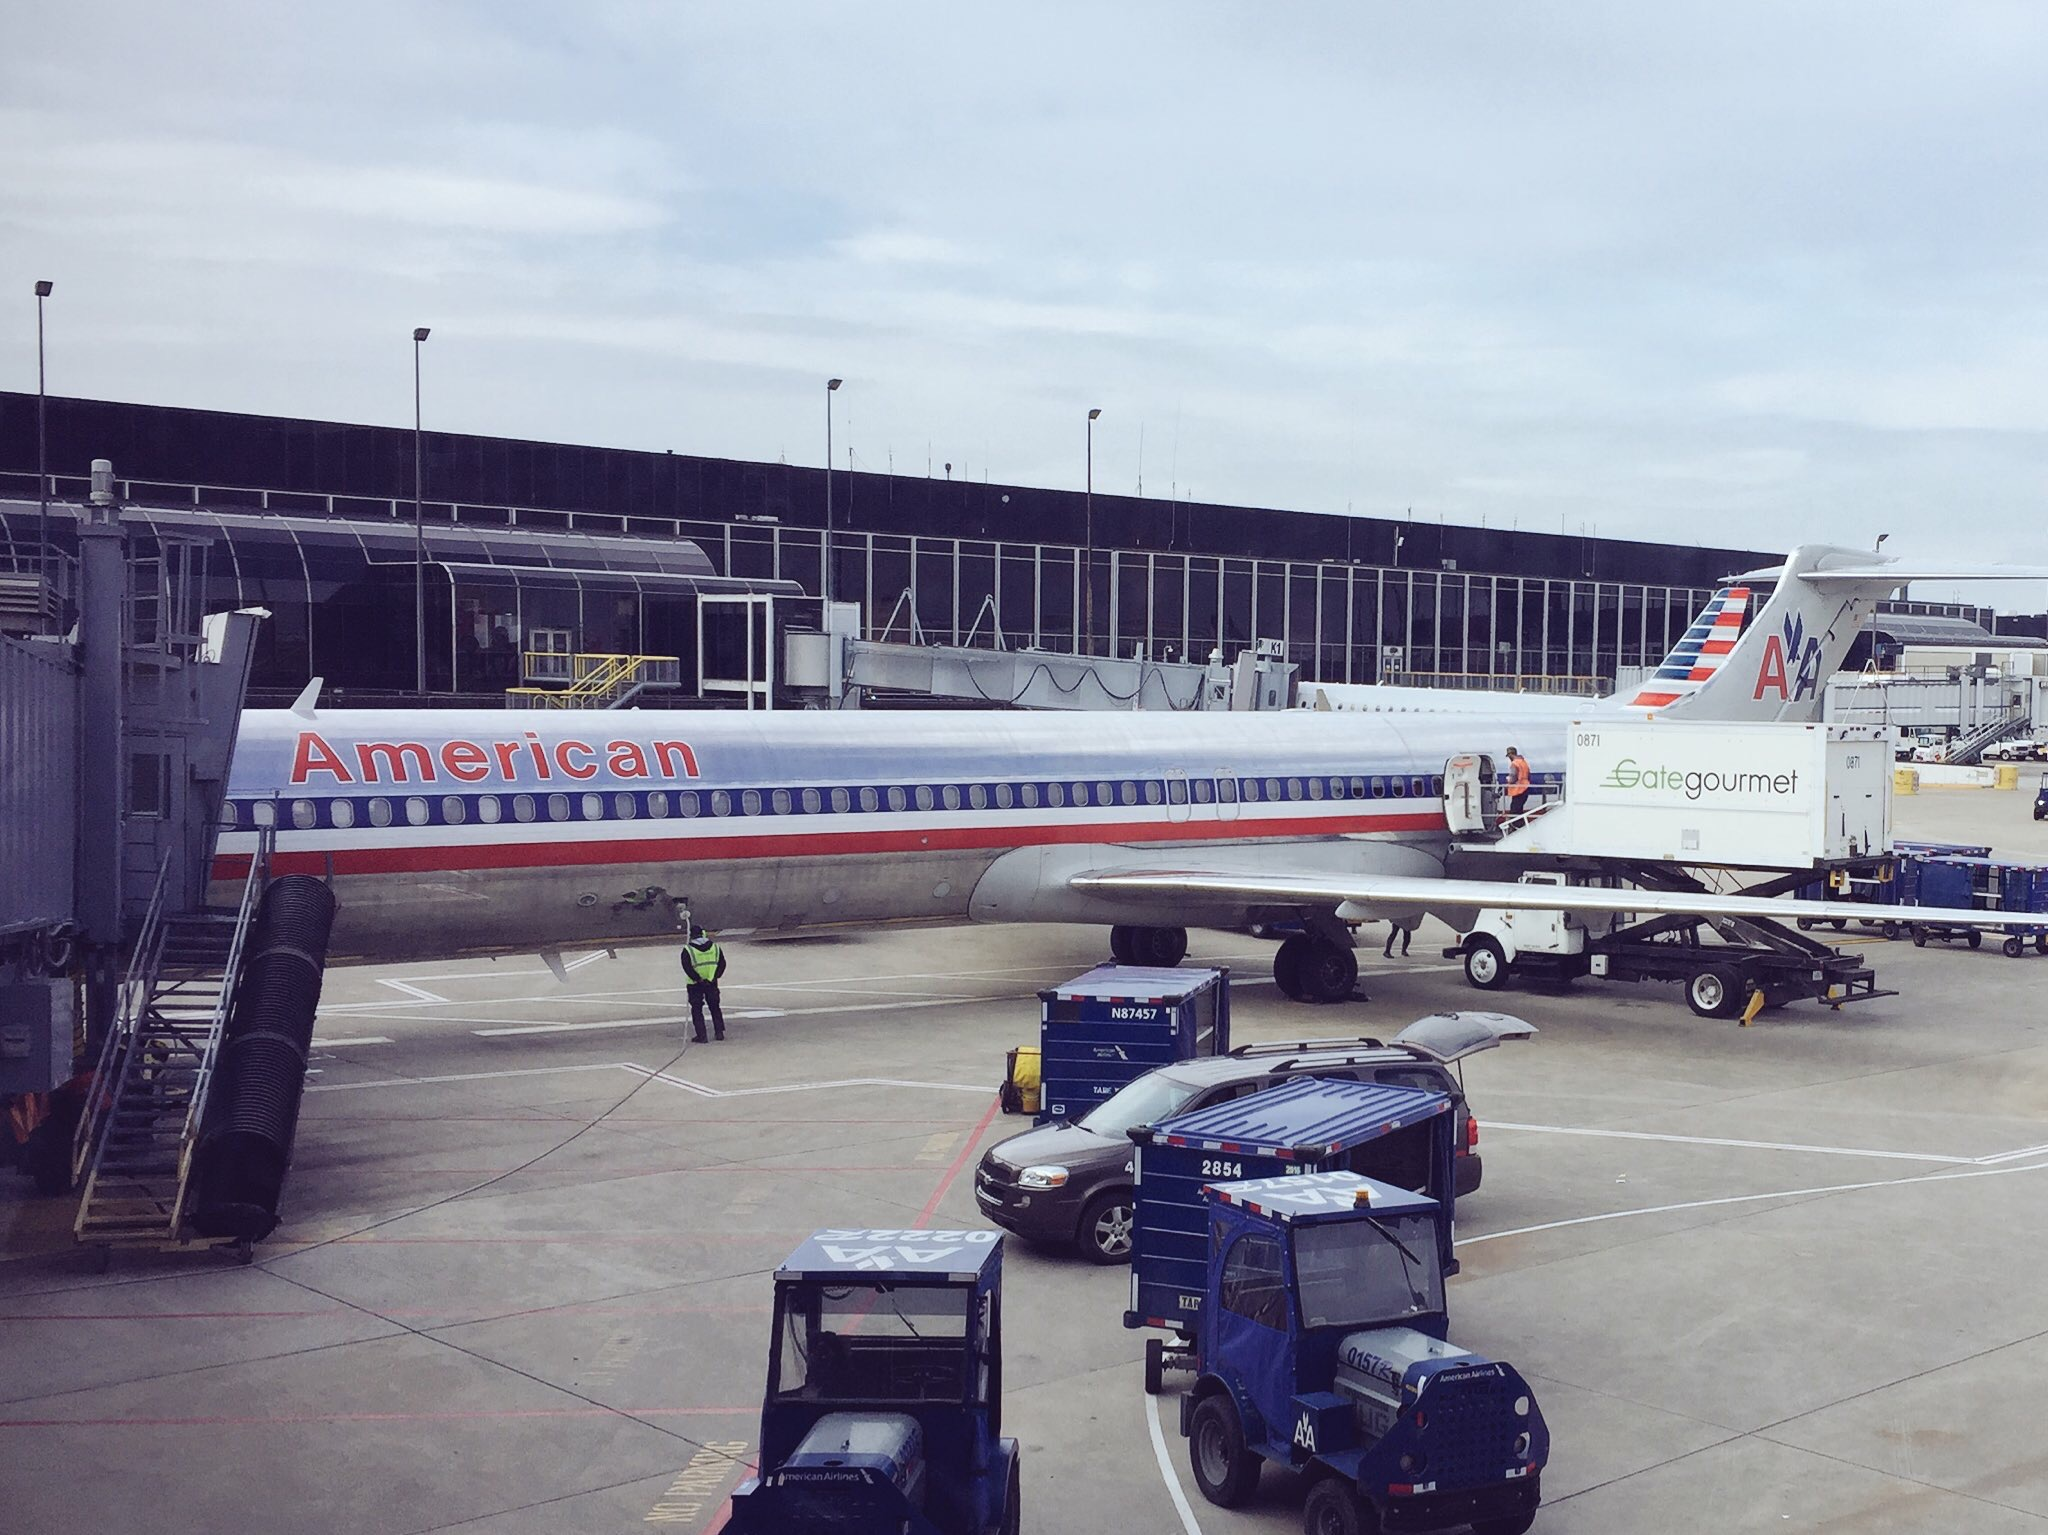 American Airlines Minneapolis Chicago